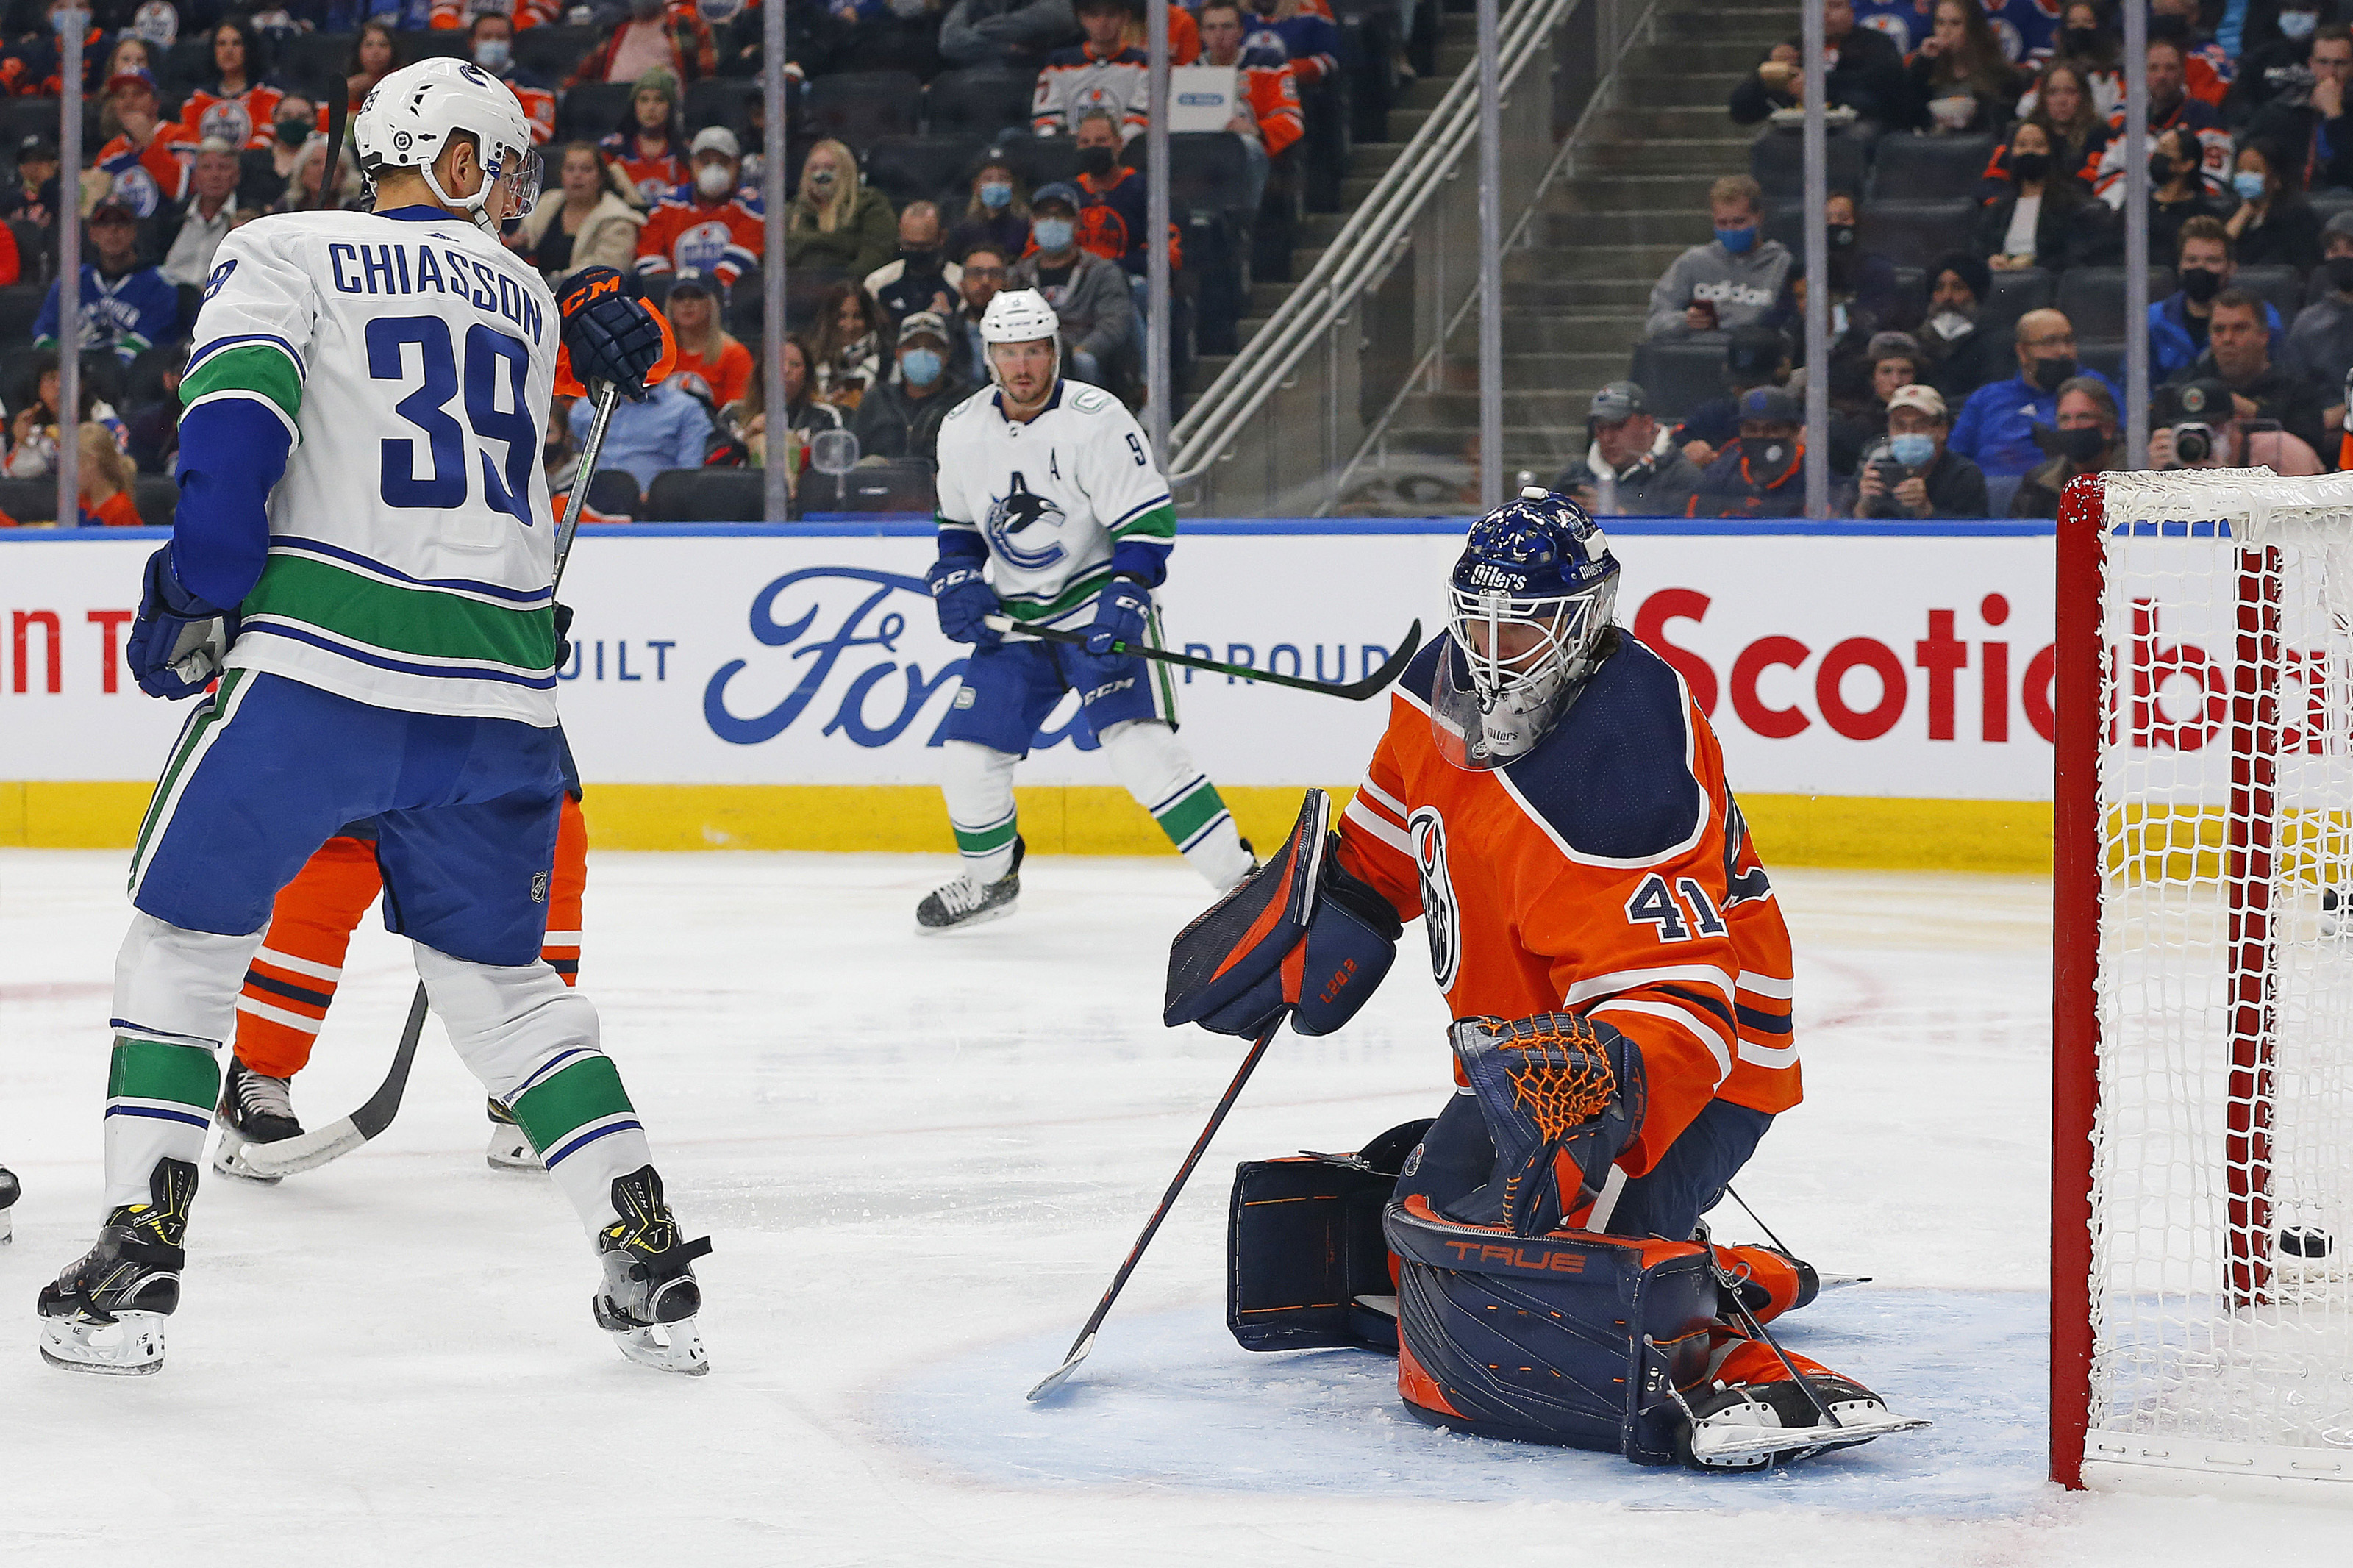 Oilers vs. Canucks: Date, Time, Betting Odds, Streaming, More